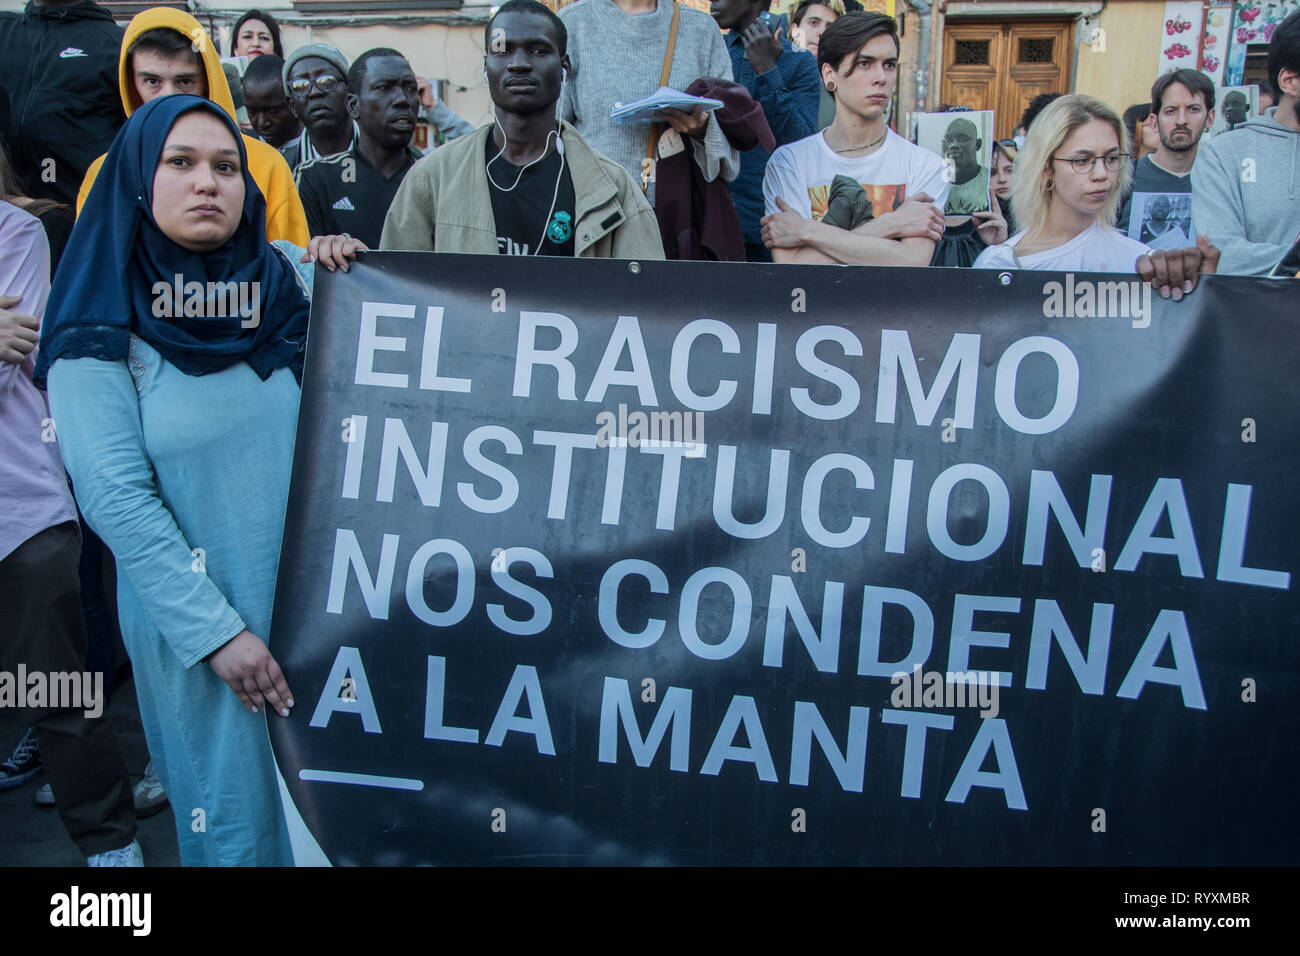 Madrid, Spain. 15th Mar 2019. A woman with a placard ¨Institutional racism condemns us and kills us¨ in the Nelson Mandela square.   March to commemorate one year of the death of senegalese vendor Mmame Mbage in Lavapies Square Nelson Mandela. one year ago there was a clashes between police and immigrants after Mmame Mbage, a Senegalese street vendor, died of a cardiac arrest allegedly after being chased by local police. Credit: Alberto Sibaja Ramírez/Alamy Live News - Stock Image